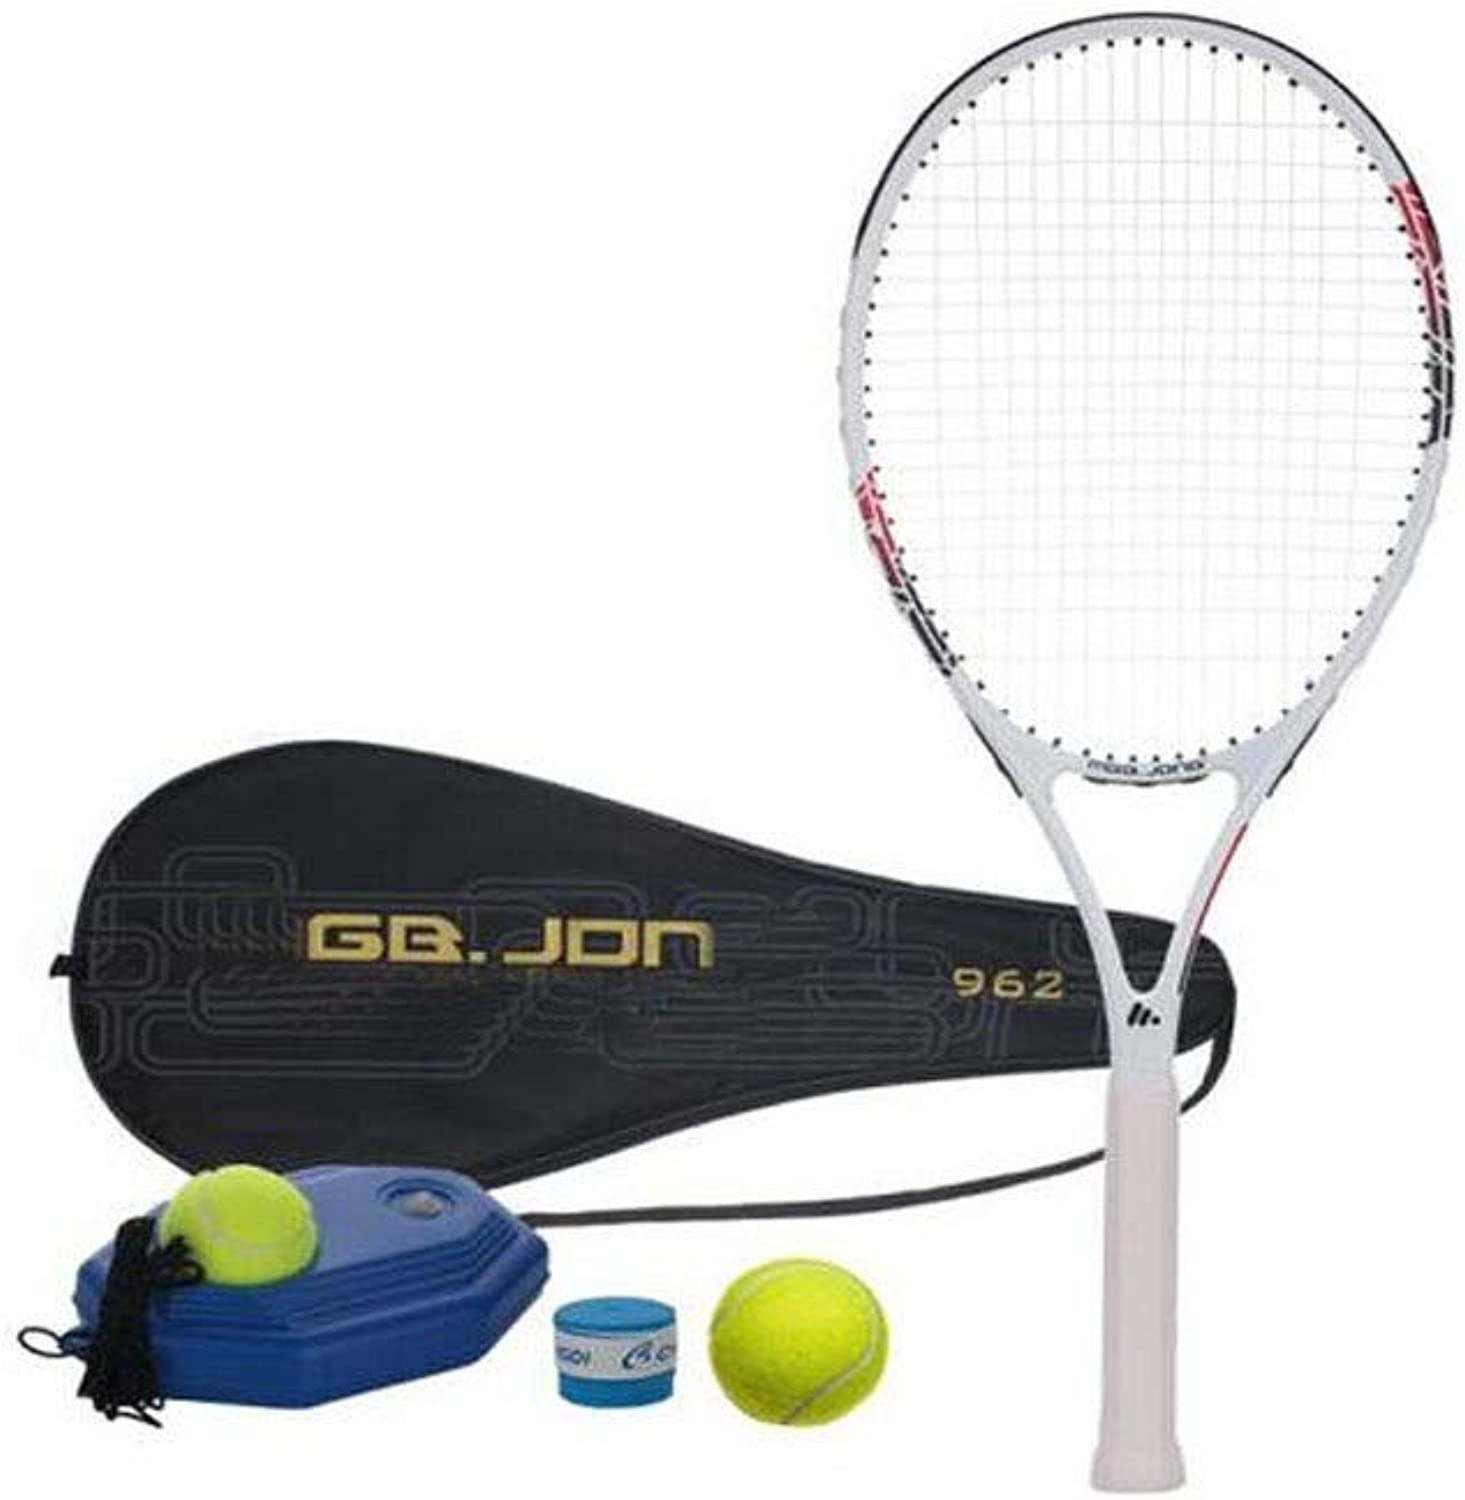 Tennis Racket, Suitable for Outdoor Sports and Fitness Tennis Racket Set, Single Beginner Training Tennis Racket Equipment White, blueee